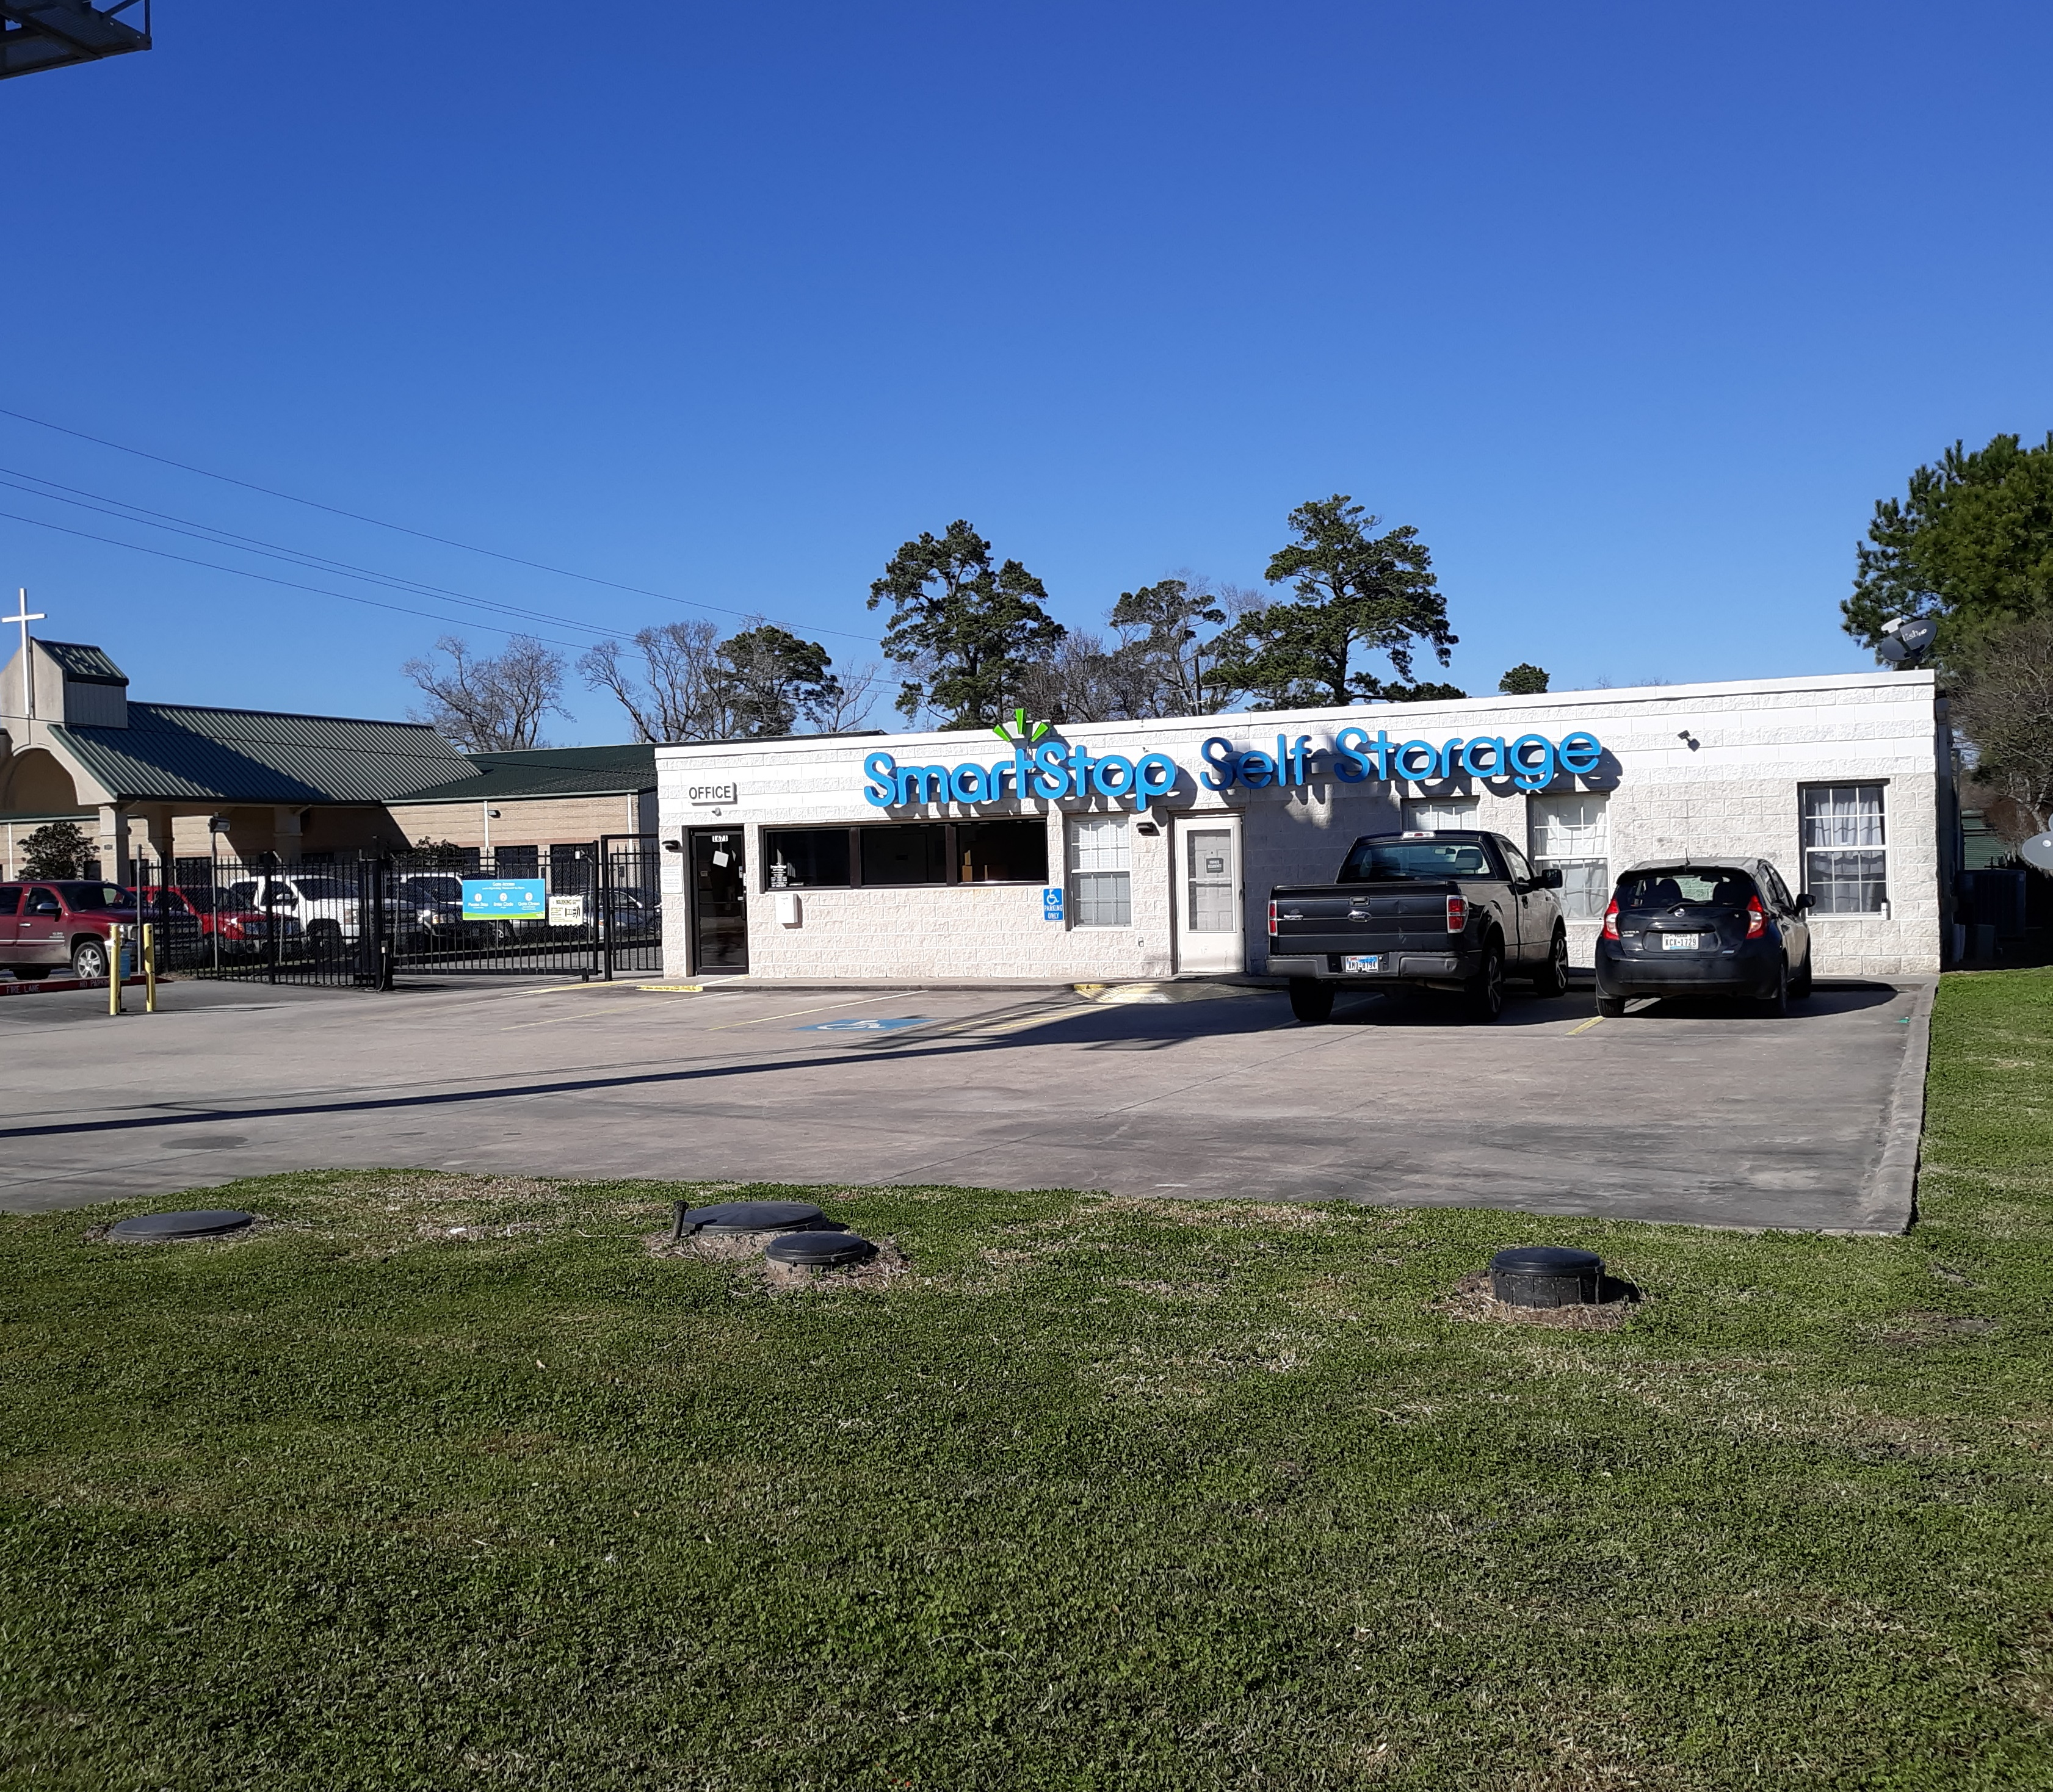 Front view of Smart Stop Self Storage facility at 1671 Northpark Drive in Kingwood Texas